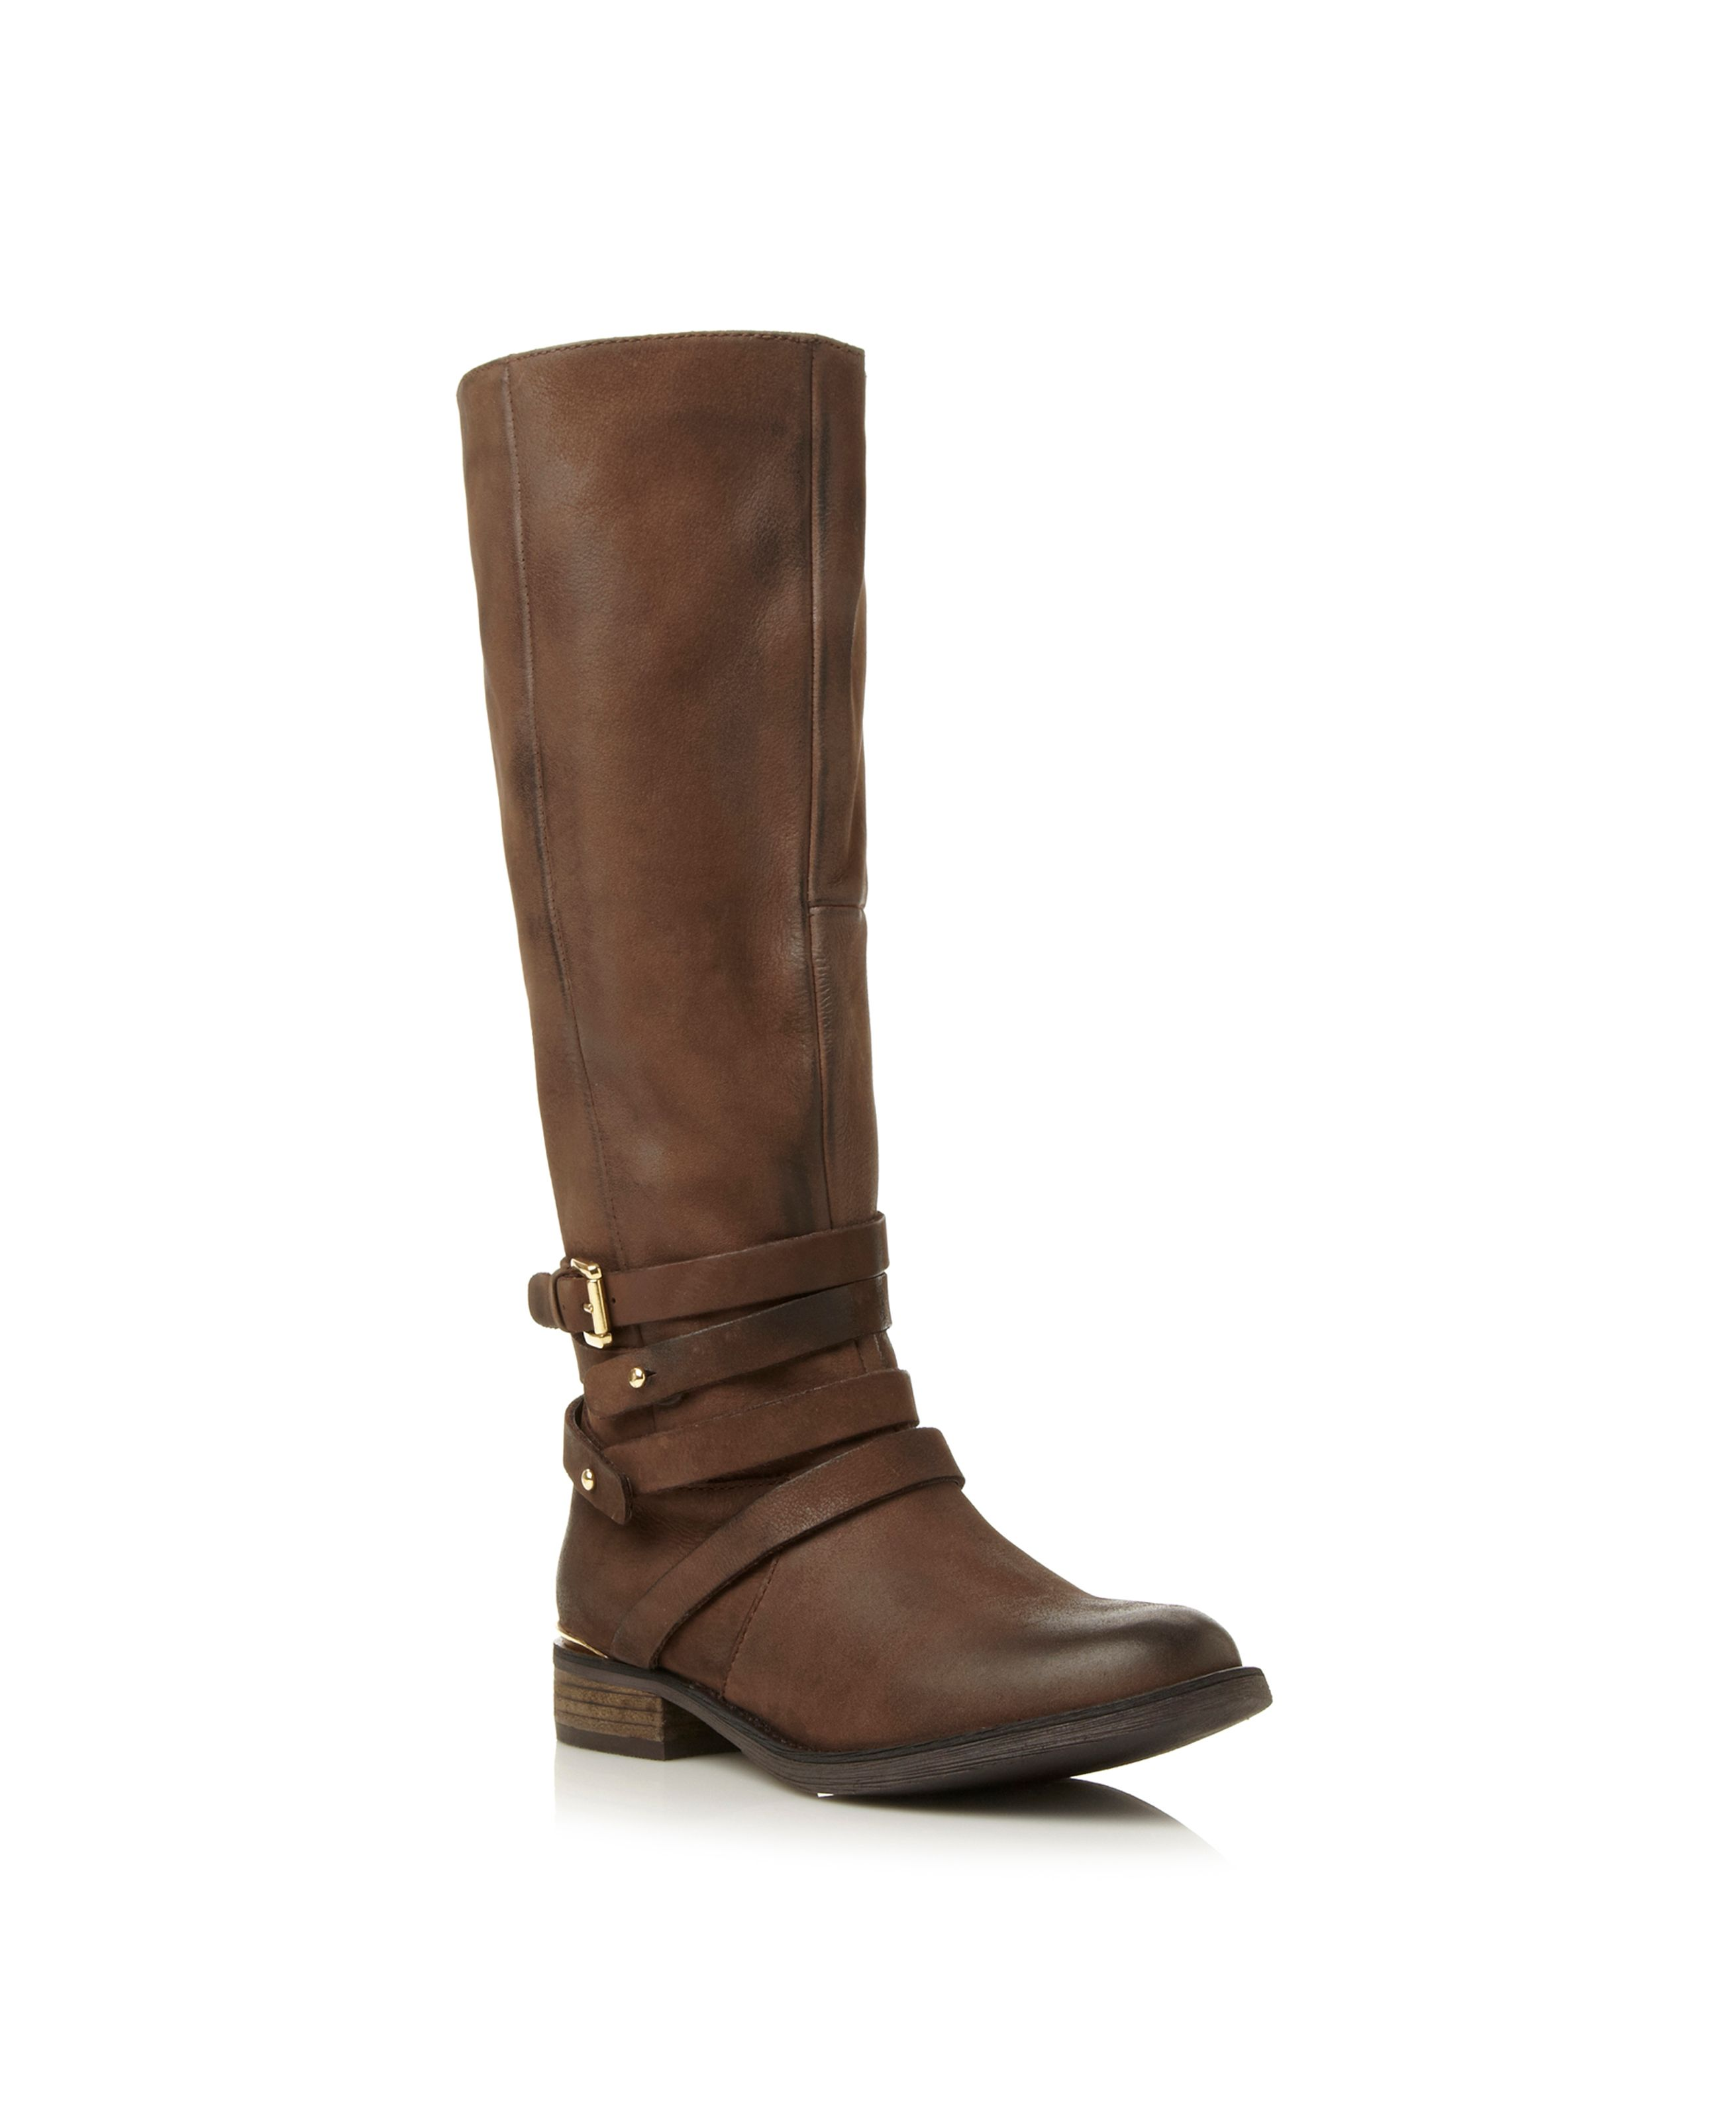 Albany SM buckle knee high boots